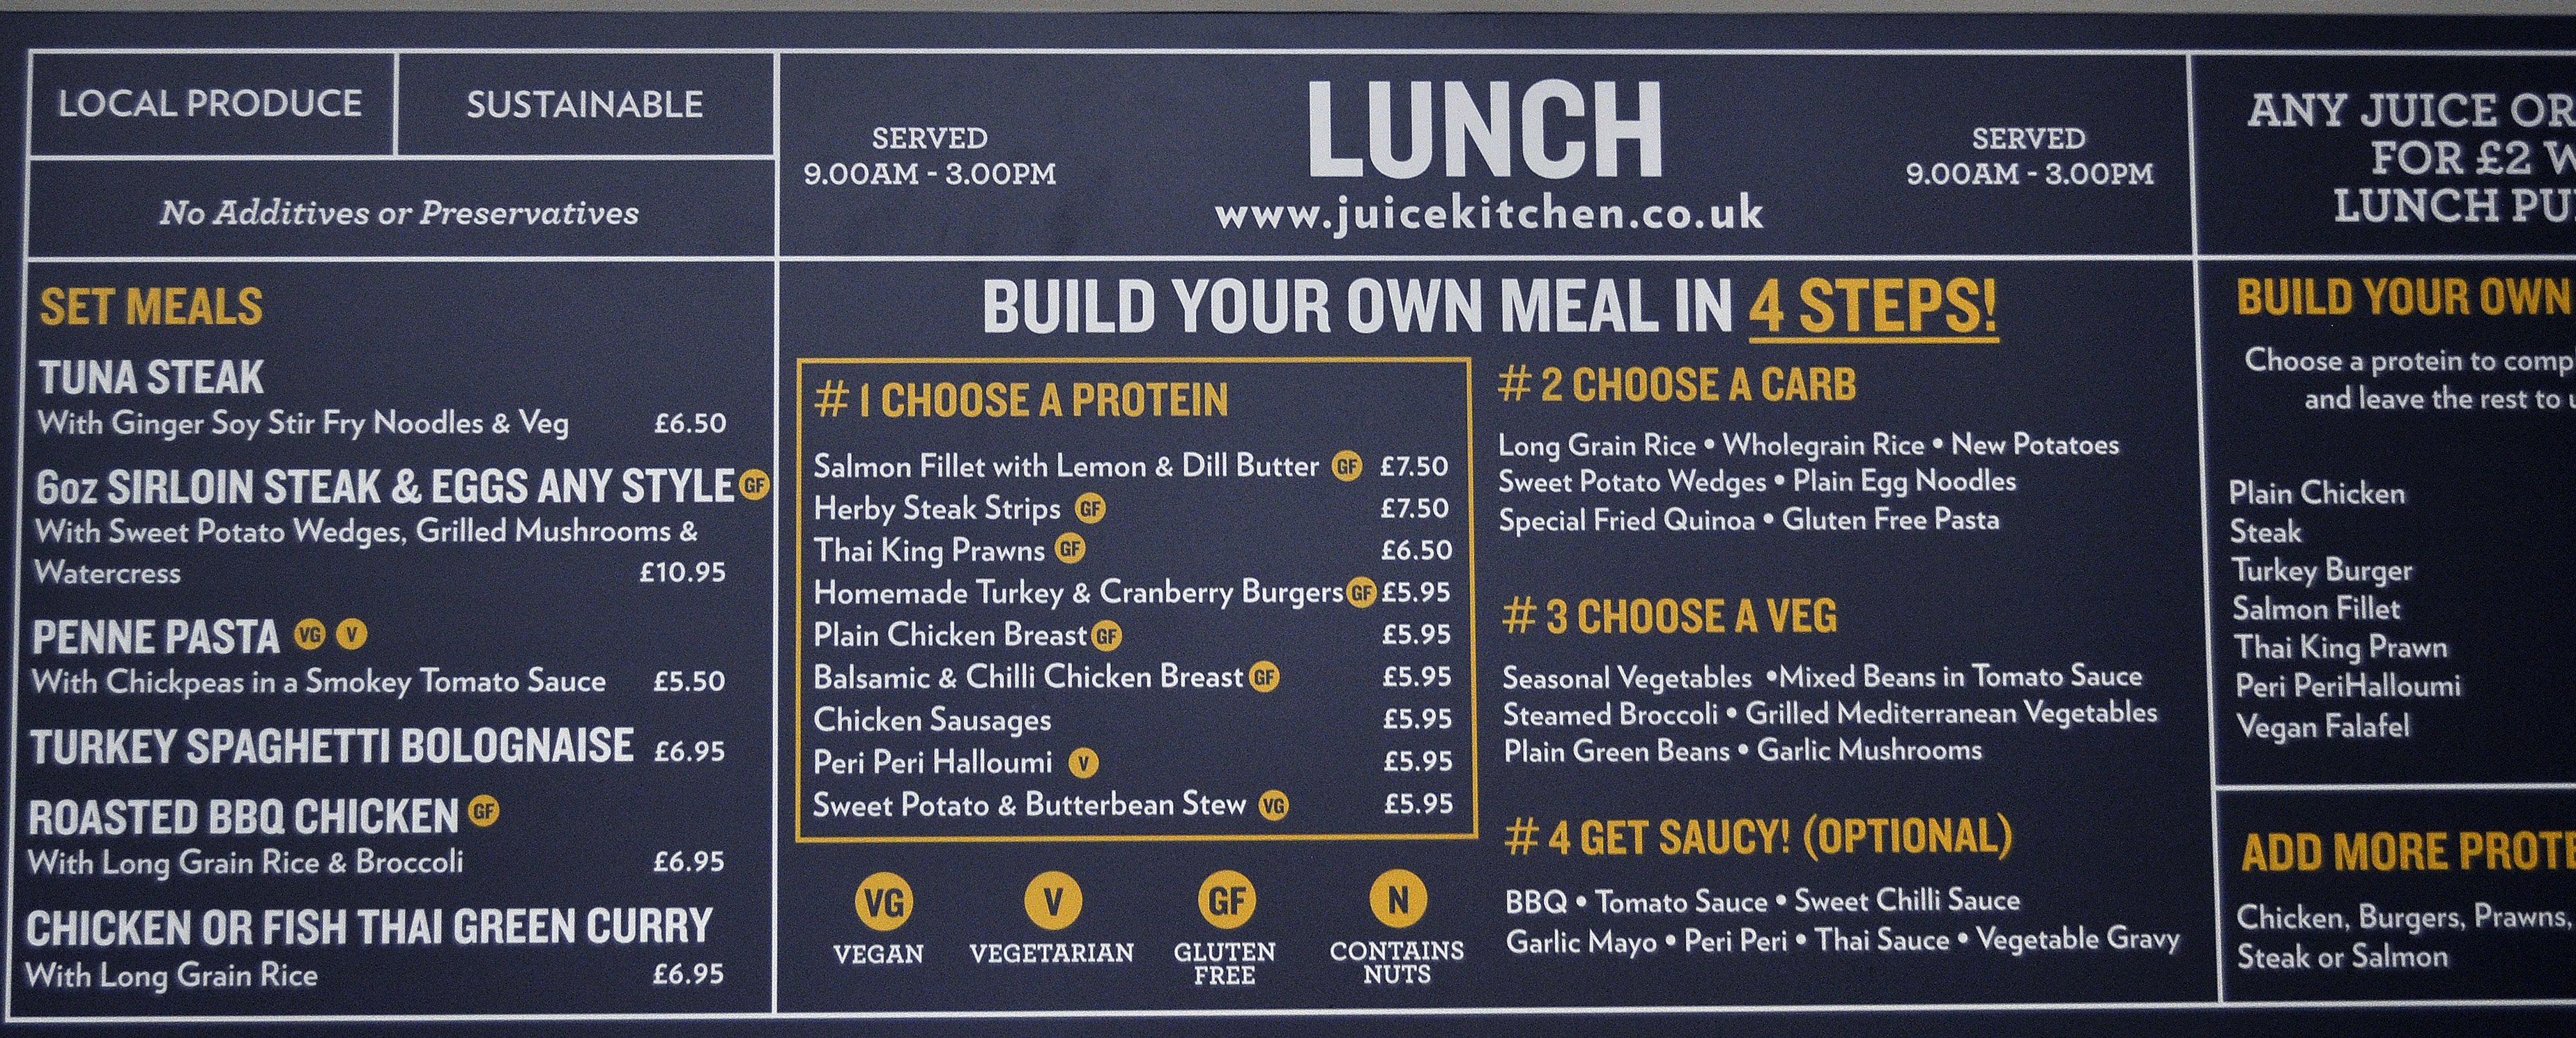 Eating Vegan At The Juice Kitchen, Chelmsford